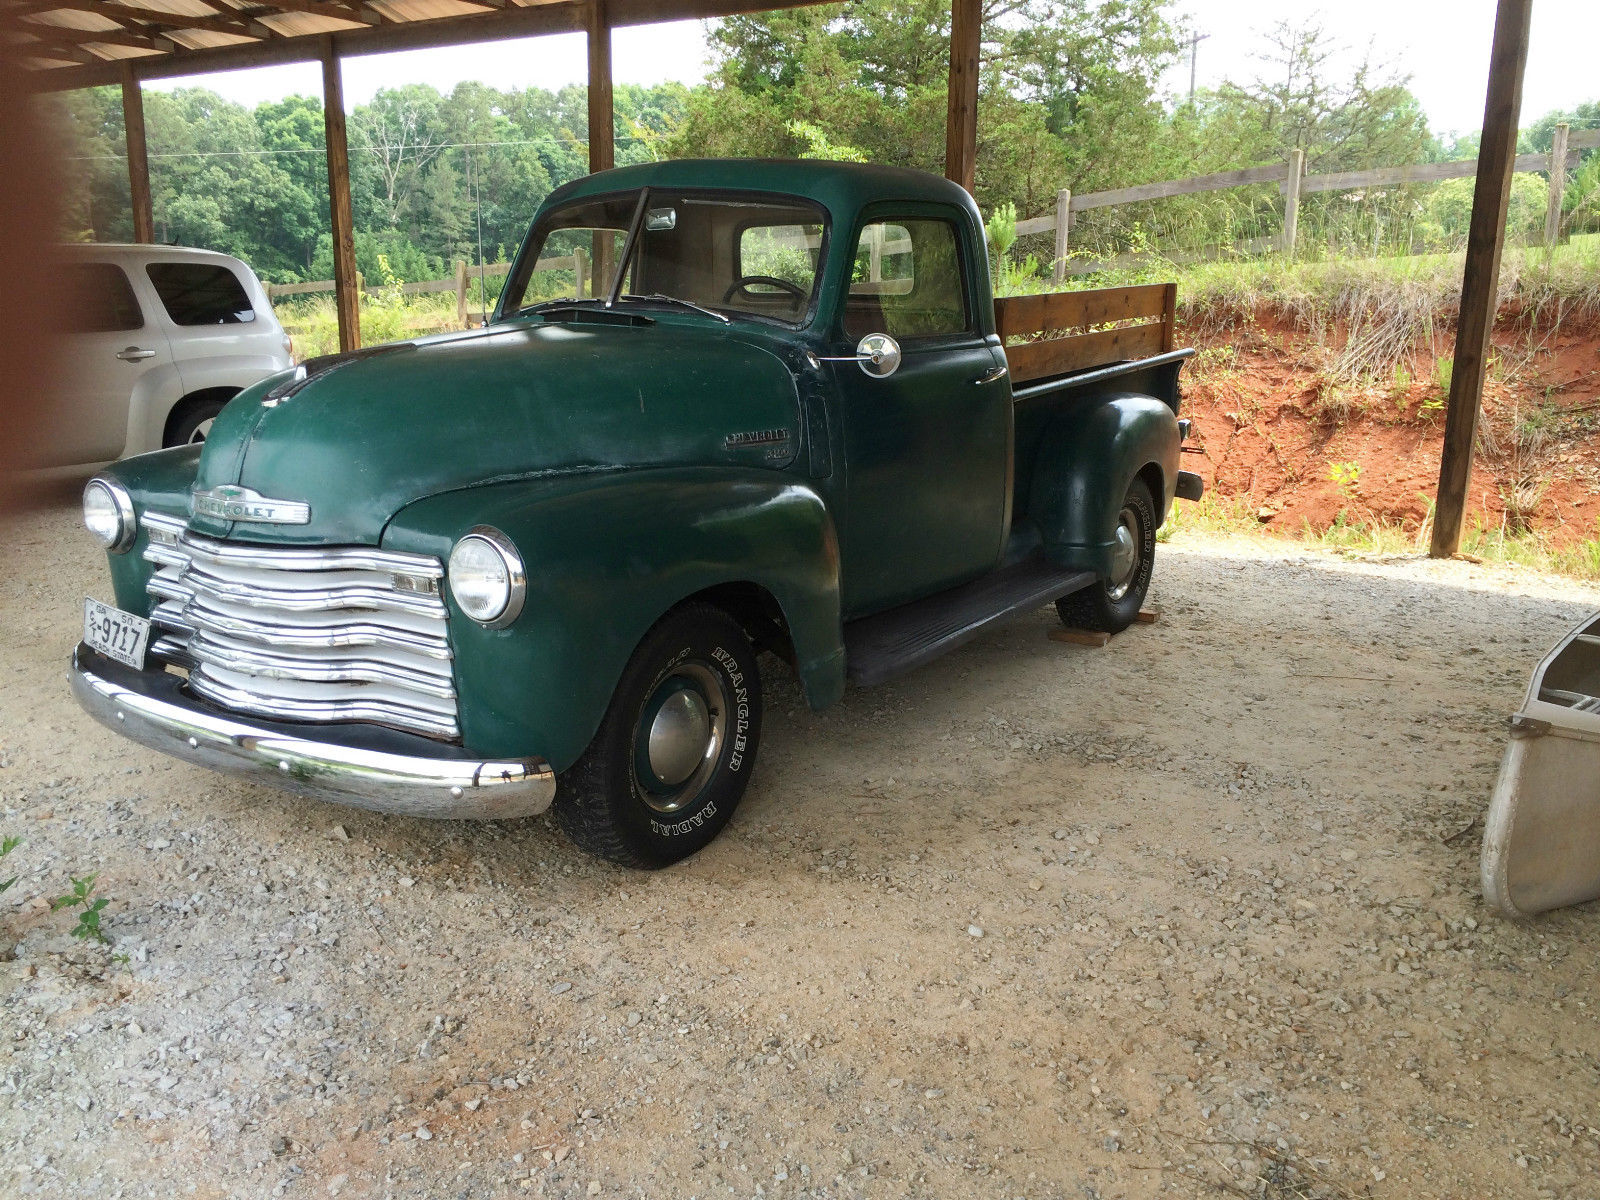 Ga Bill Of Sale For Car >> 1950 Chevrolet 3100 Pickup Truck - Runs Great! - Classic ...